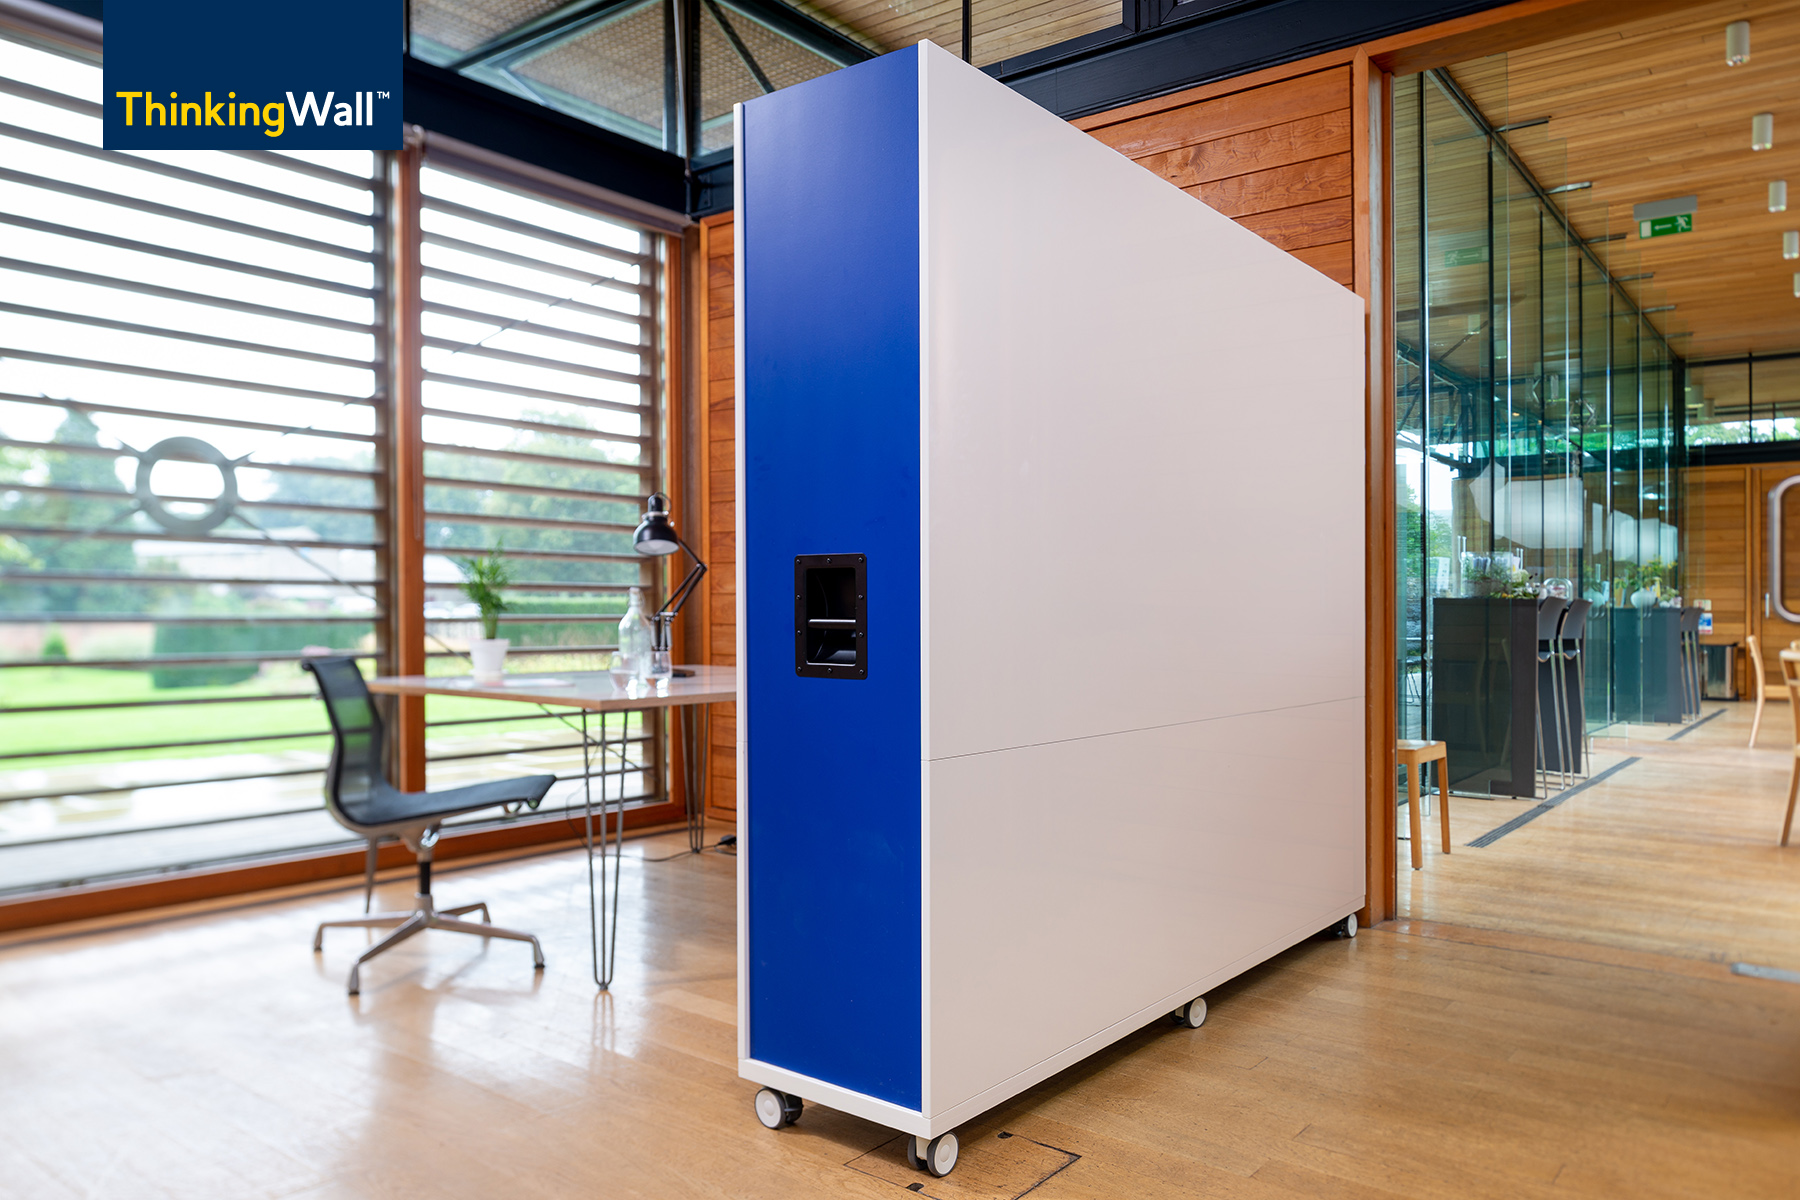 ThinkingWall Divider mobile whiteboard wall